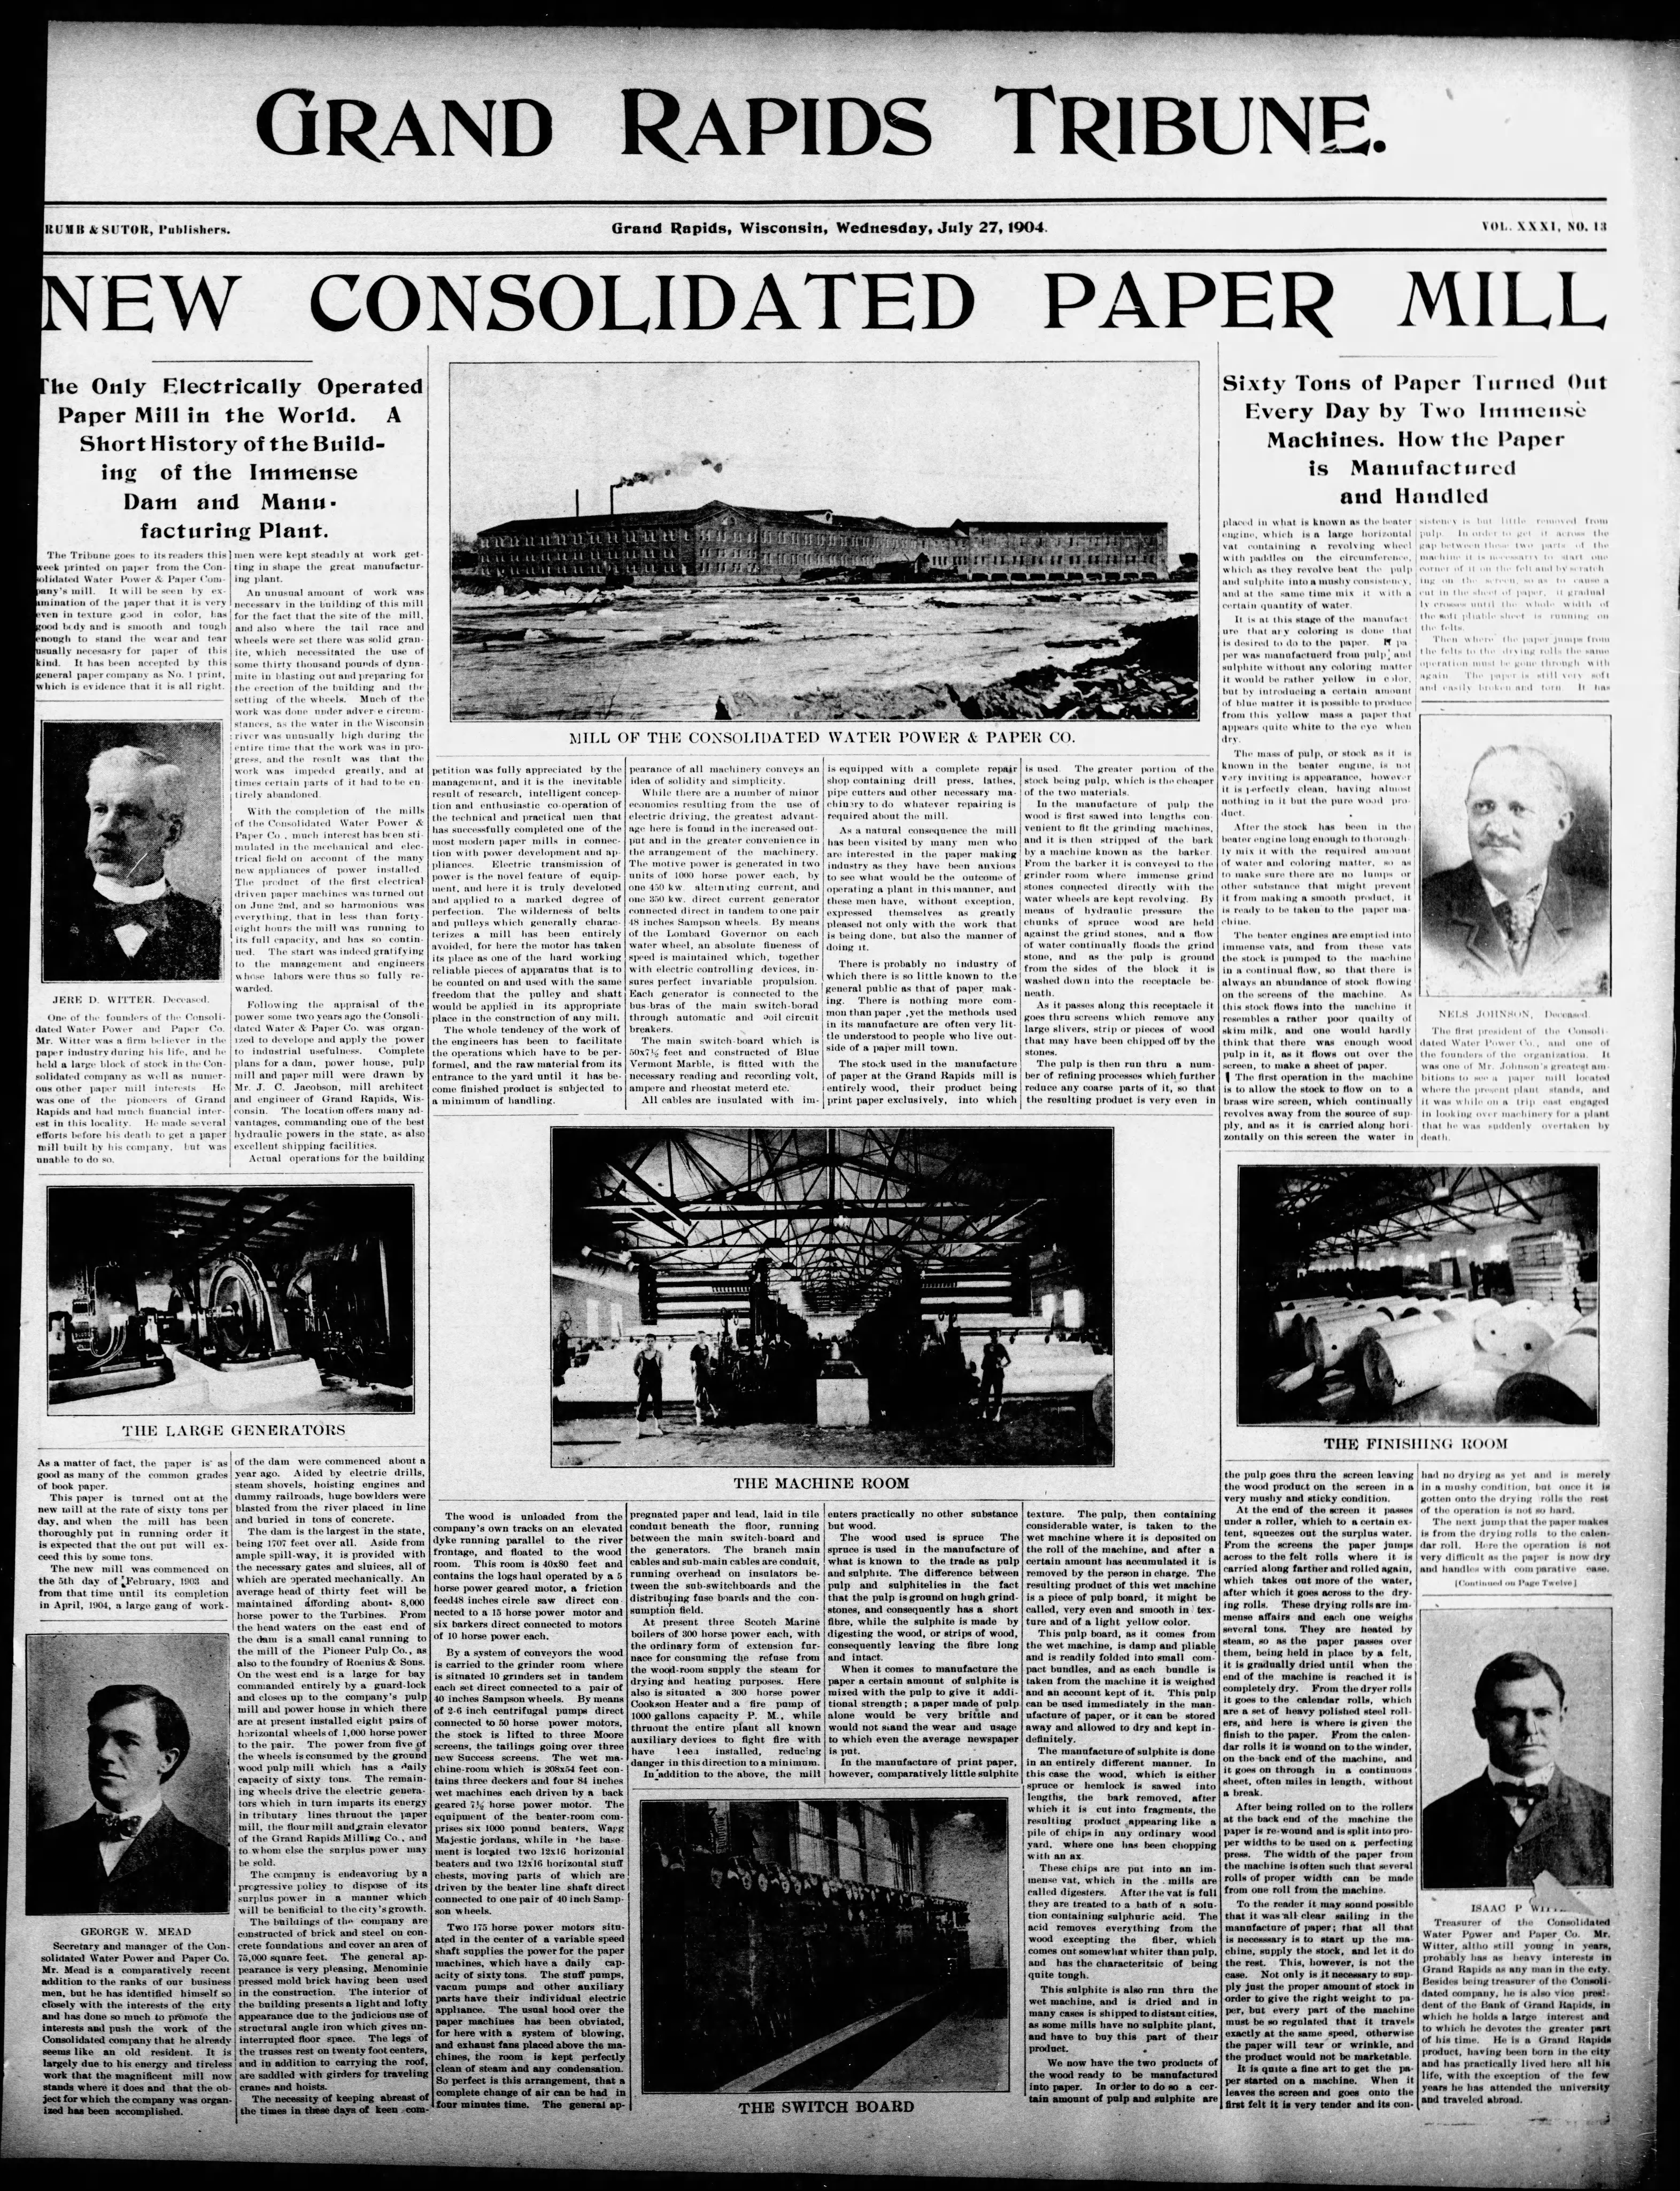 Consolidated Papers Wisconsin Rapids NOS Tape Measure Consolidated Paper Mill